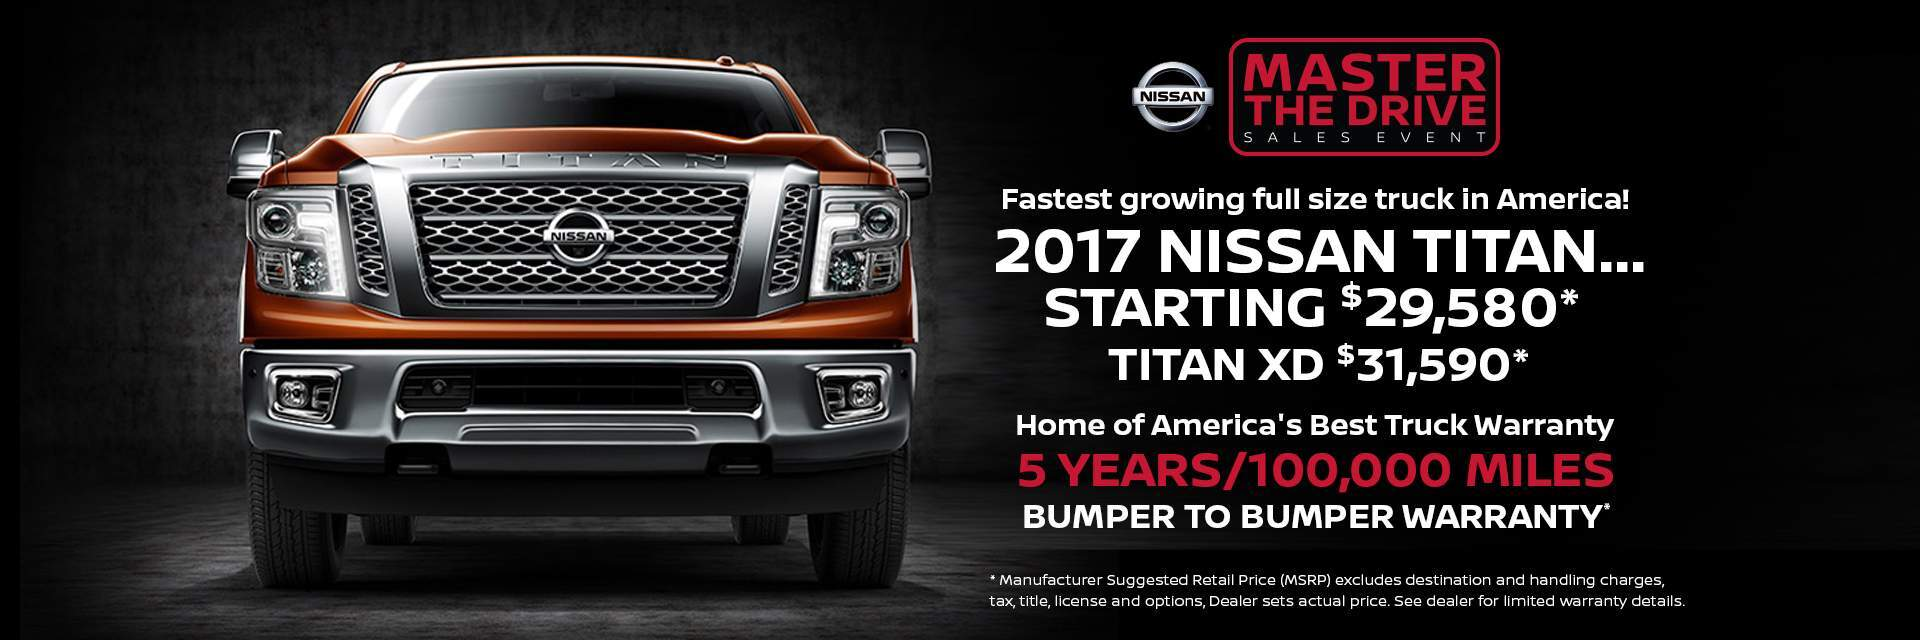 Master the drive sales event 2017 Nissan Titan